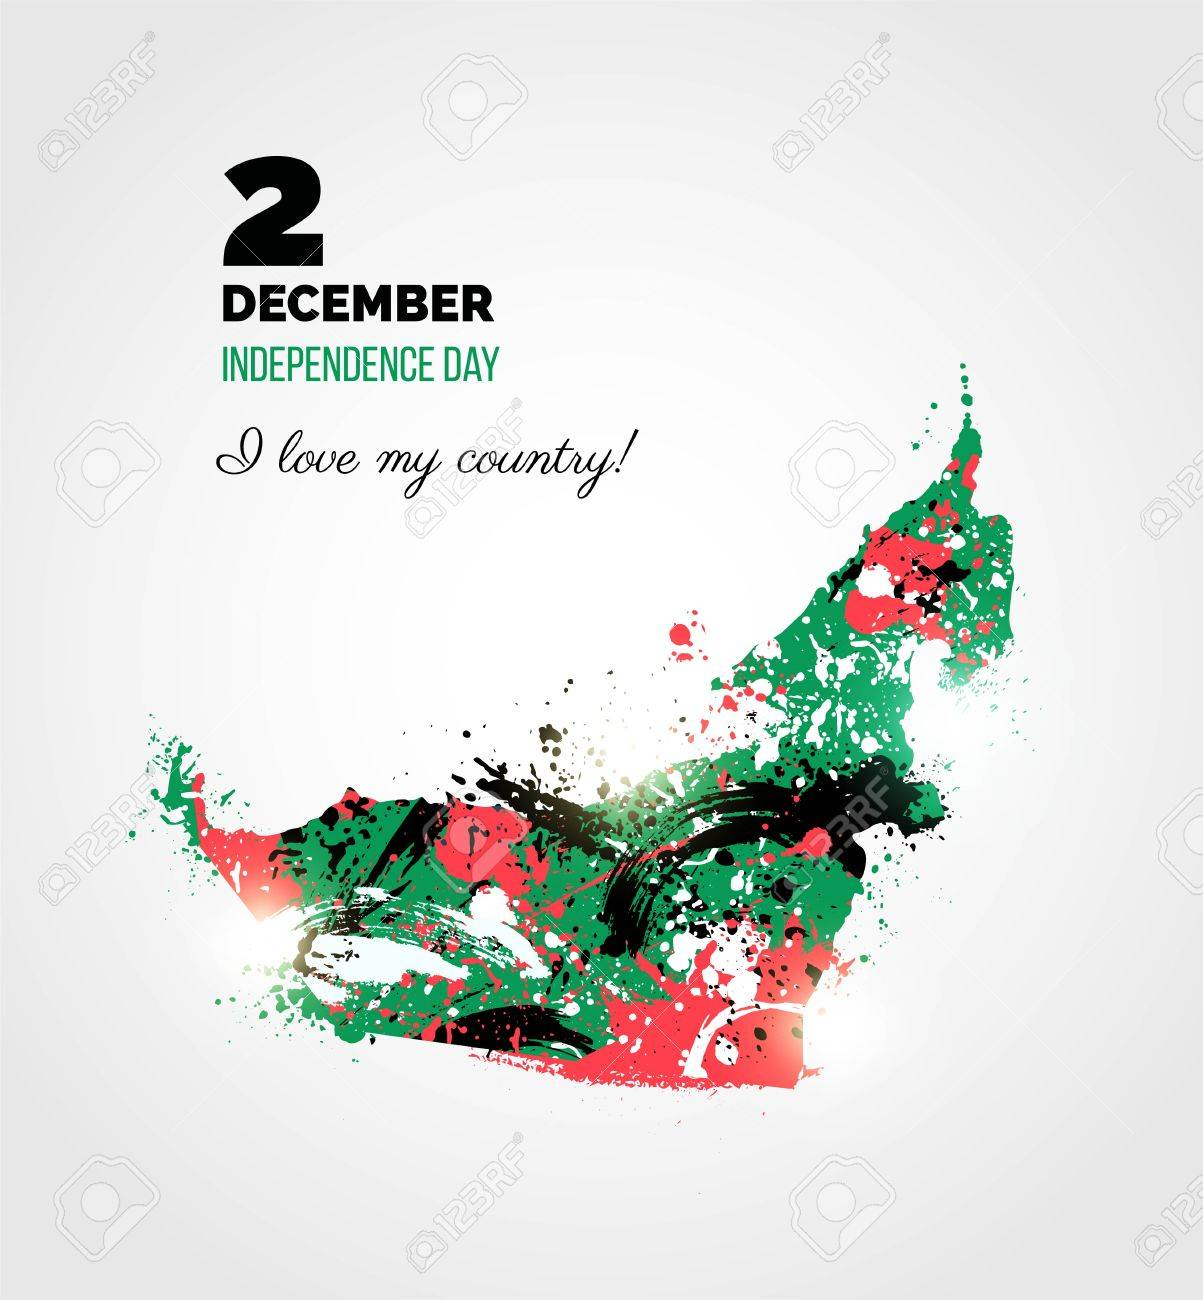 2 December Uae Independence Day Greeting Card Holiday Background